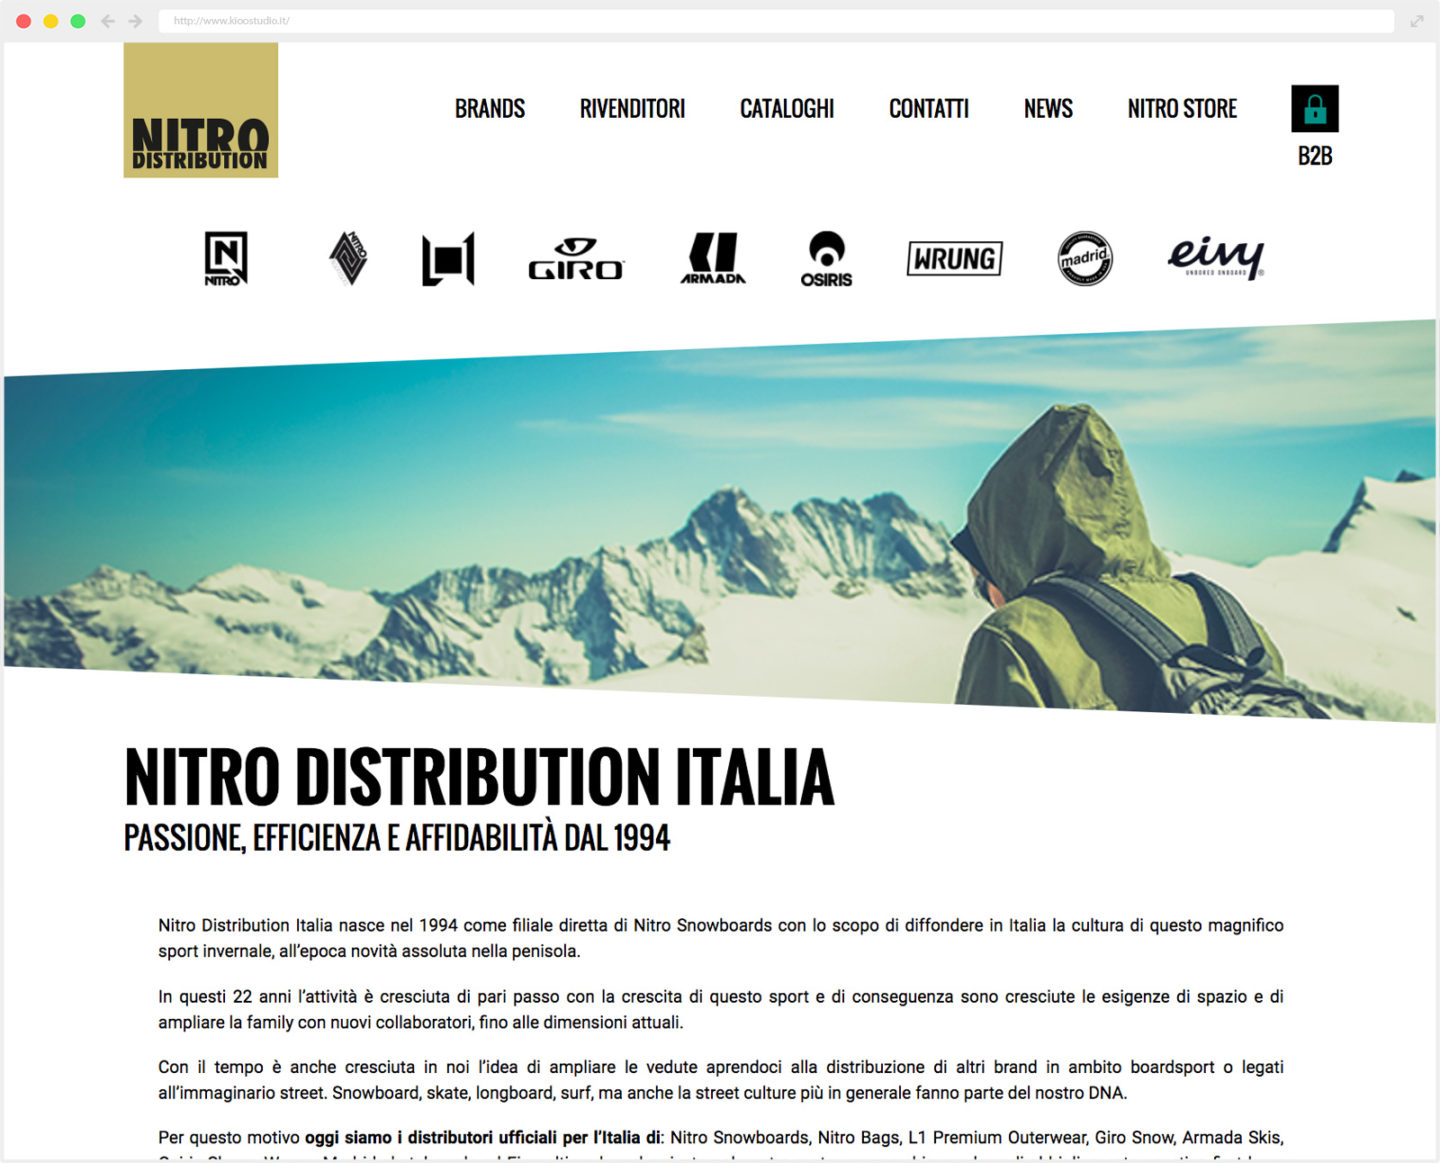 Nitro Distribution Italia